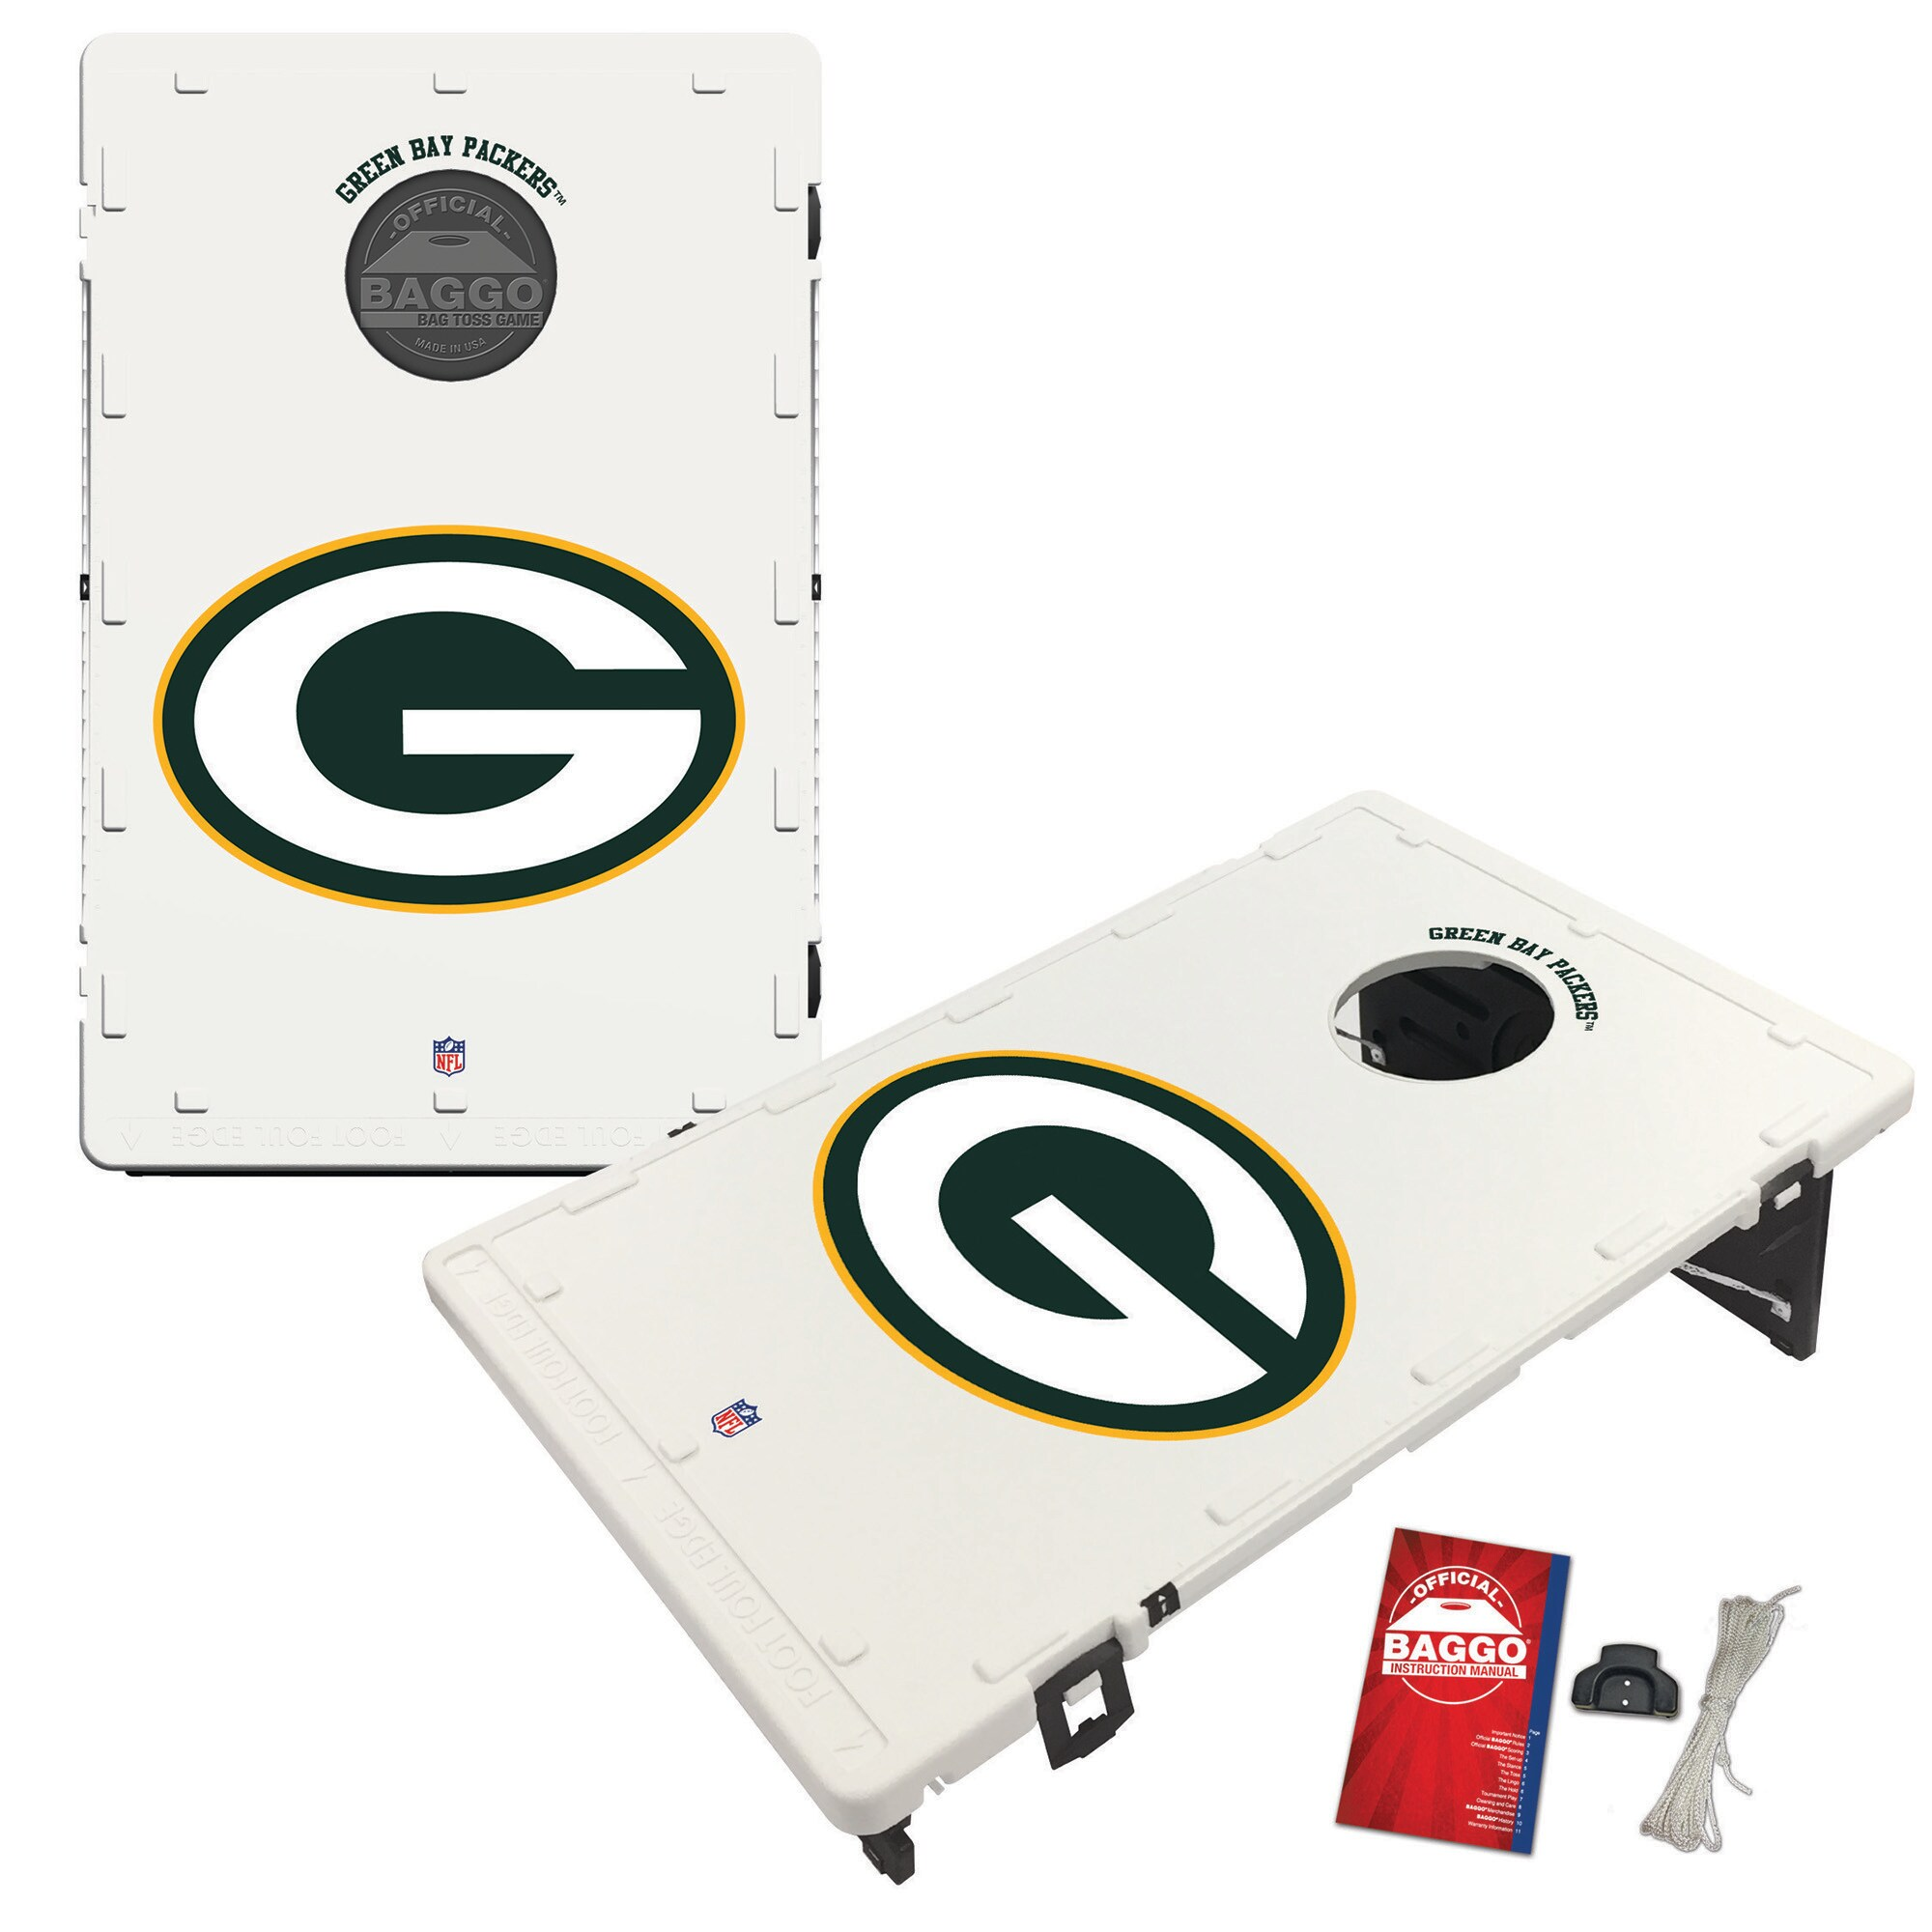 Green Bay Packers 2' x 3' Classic Design BAGGO Cornhole Board Tailgate Toss Set